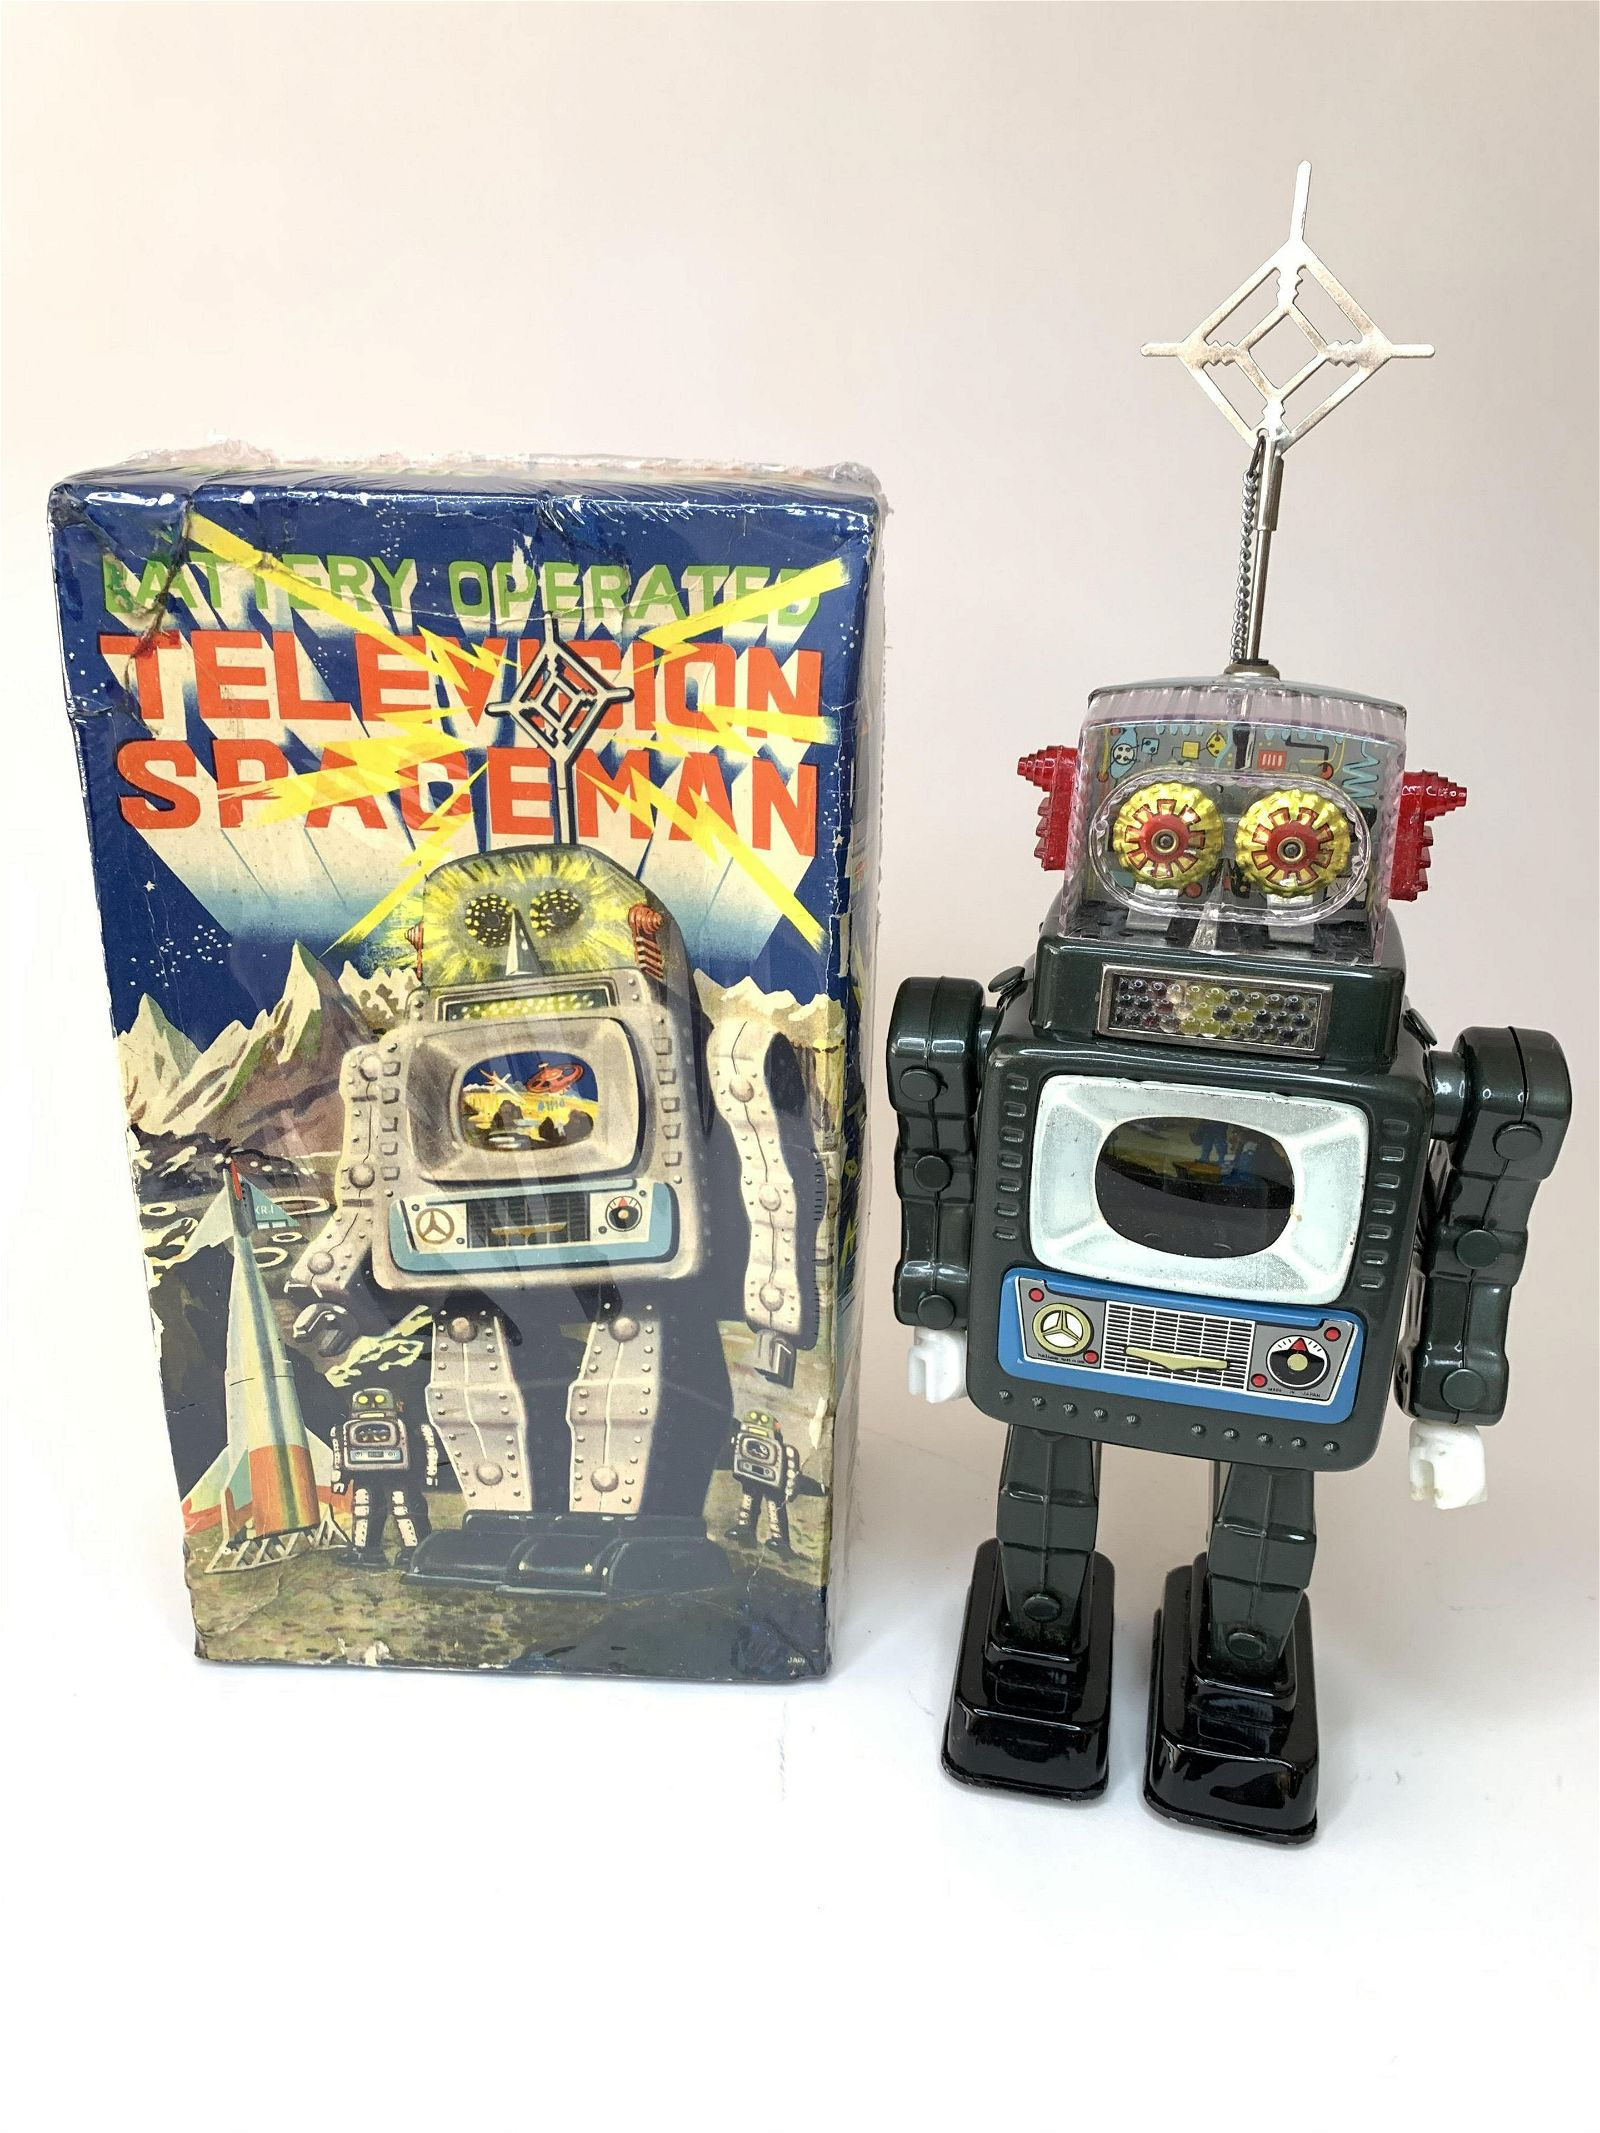 Battery Operated Television Spaceman Metal Version